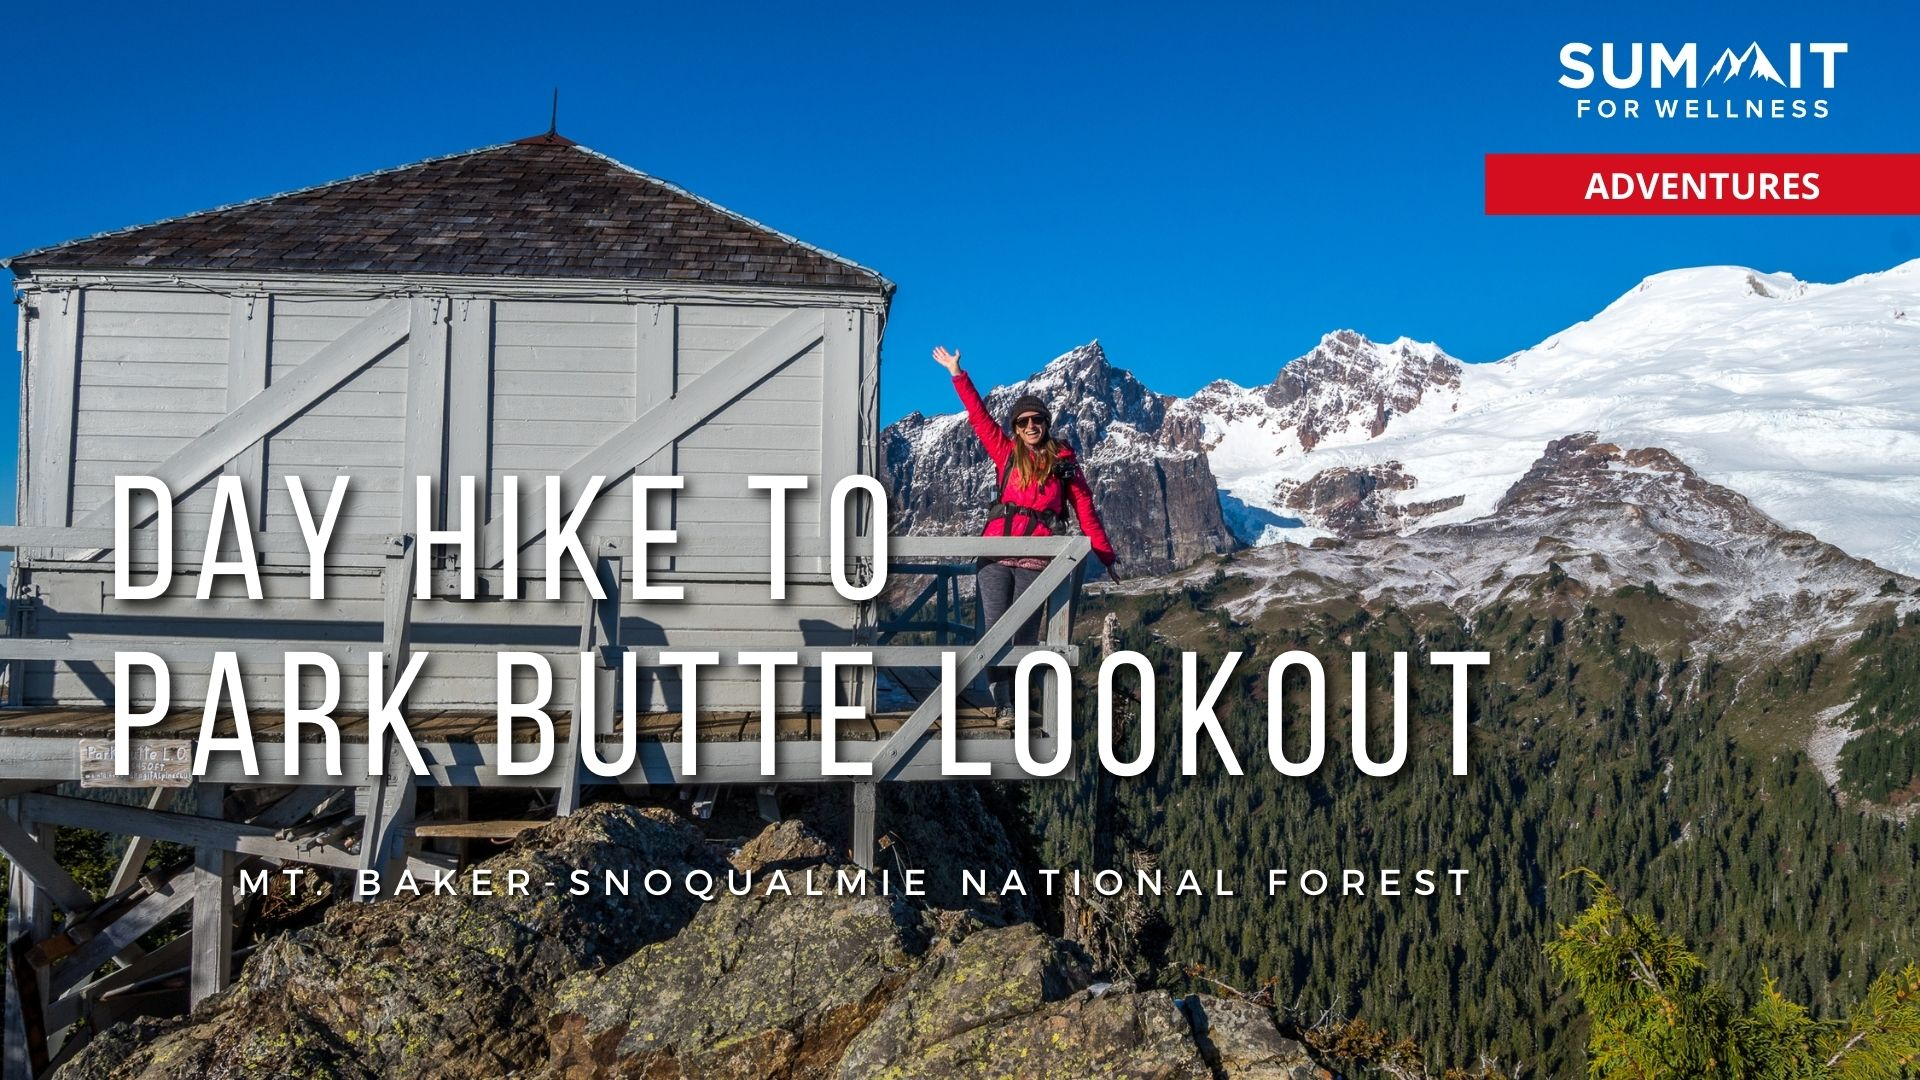 Take a Day Hike to Park Butte Lookout for amazing views of Mt Baker